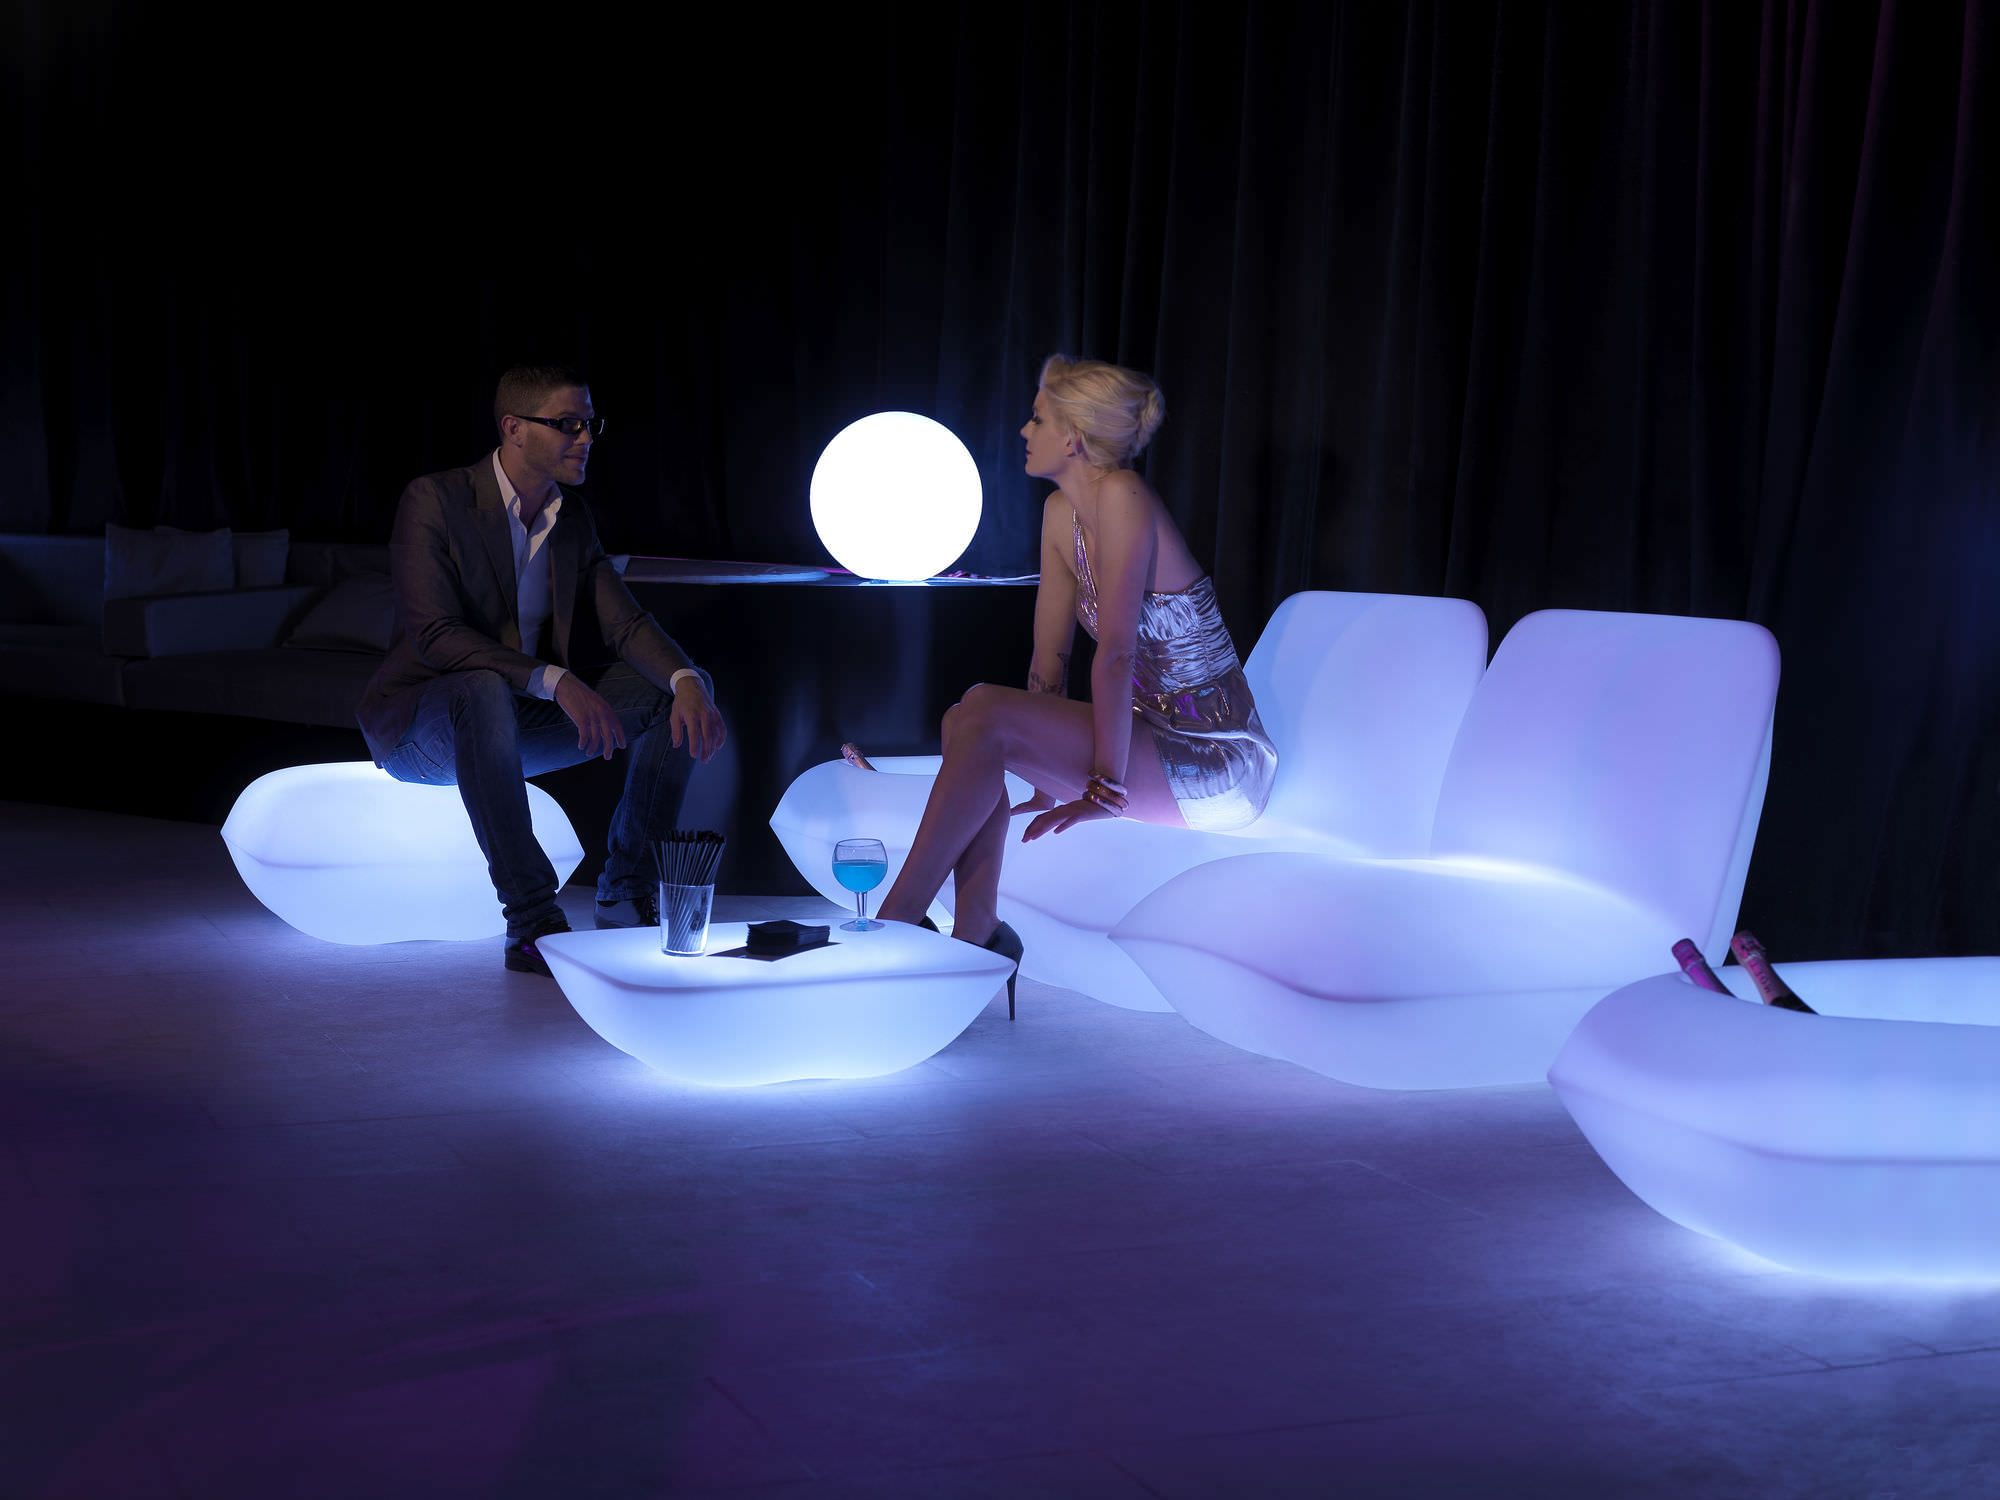 Add light to your furniture with vondoms led outdoor furniture you can find vondom at rosenthal interiors in downtown minneapolis